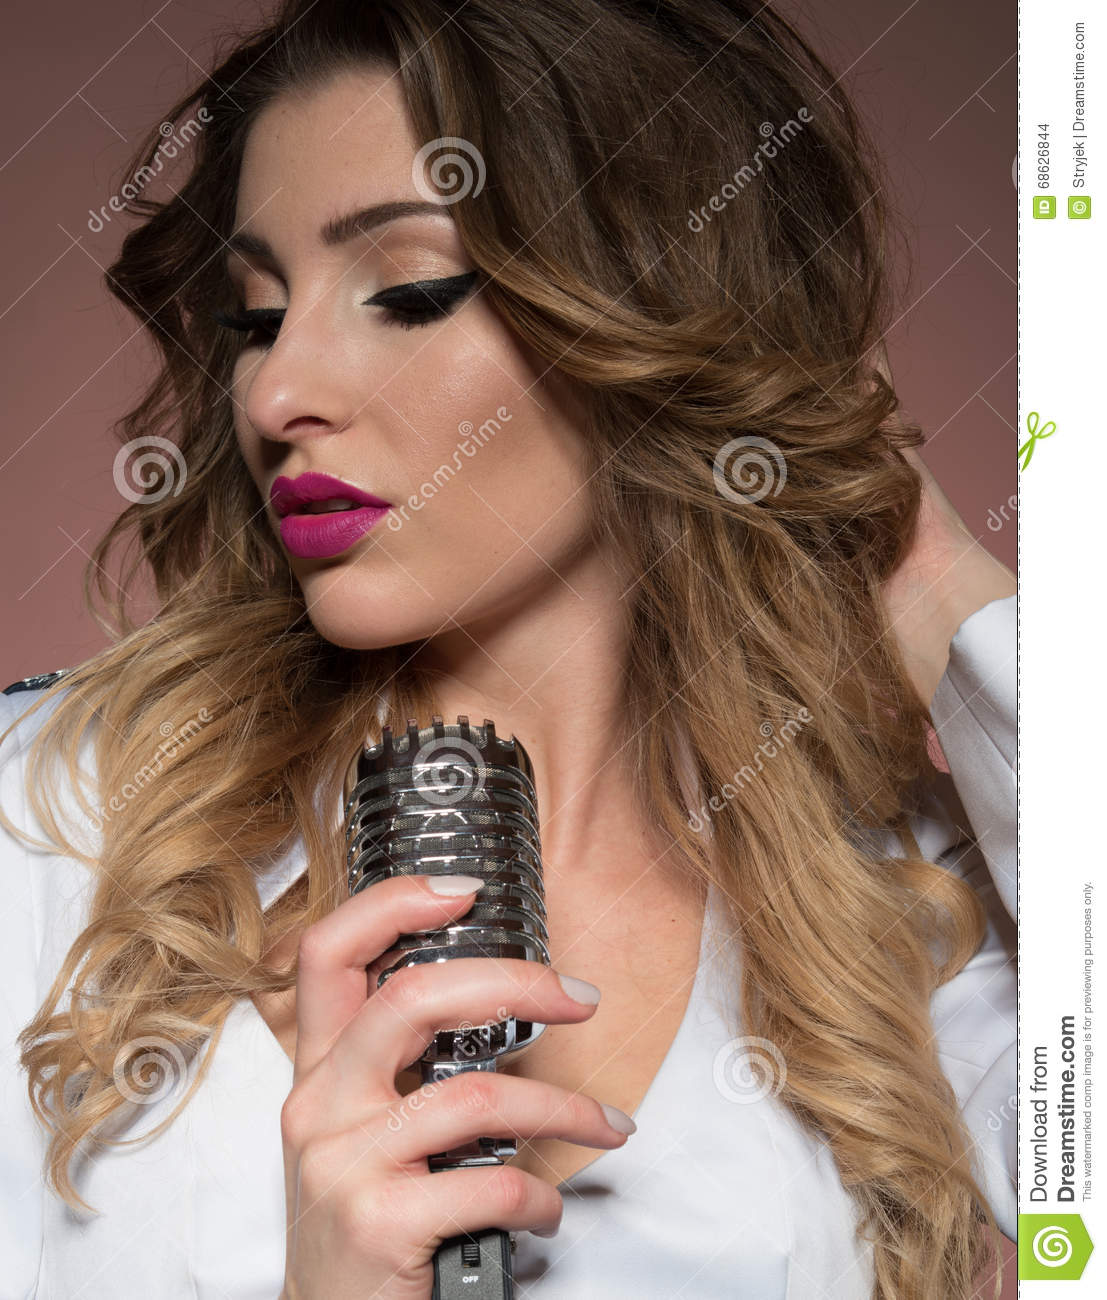 Naked Woman With Retro Mic